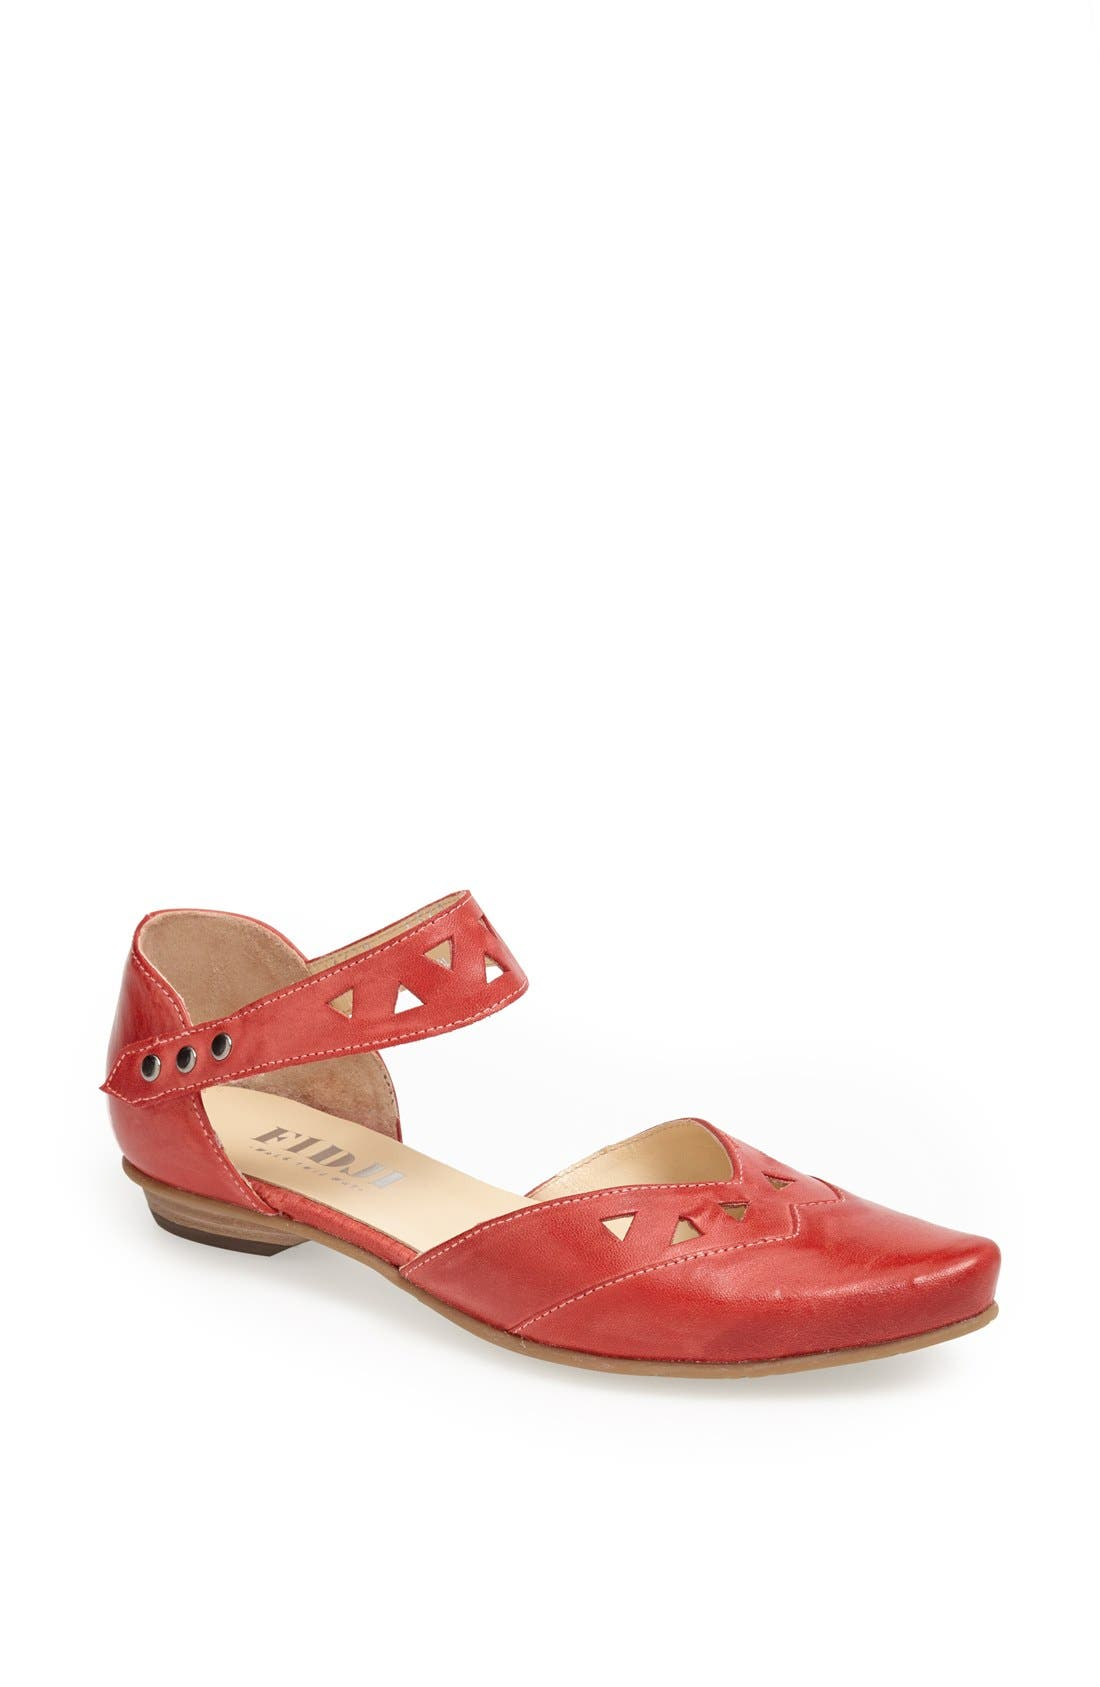 Alternate Image 1 Selected - Fidji Ankle Strap d'Orsay Flat